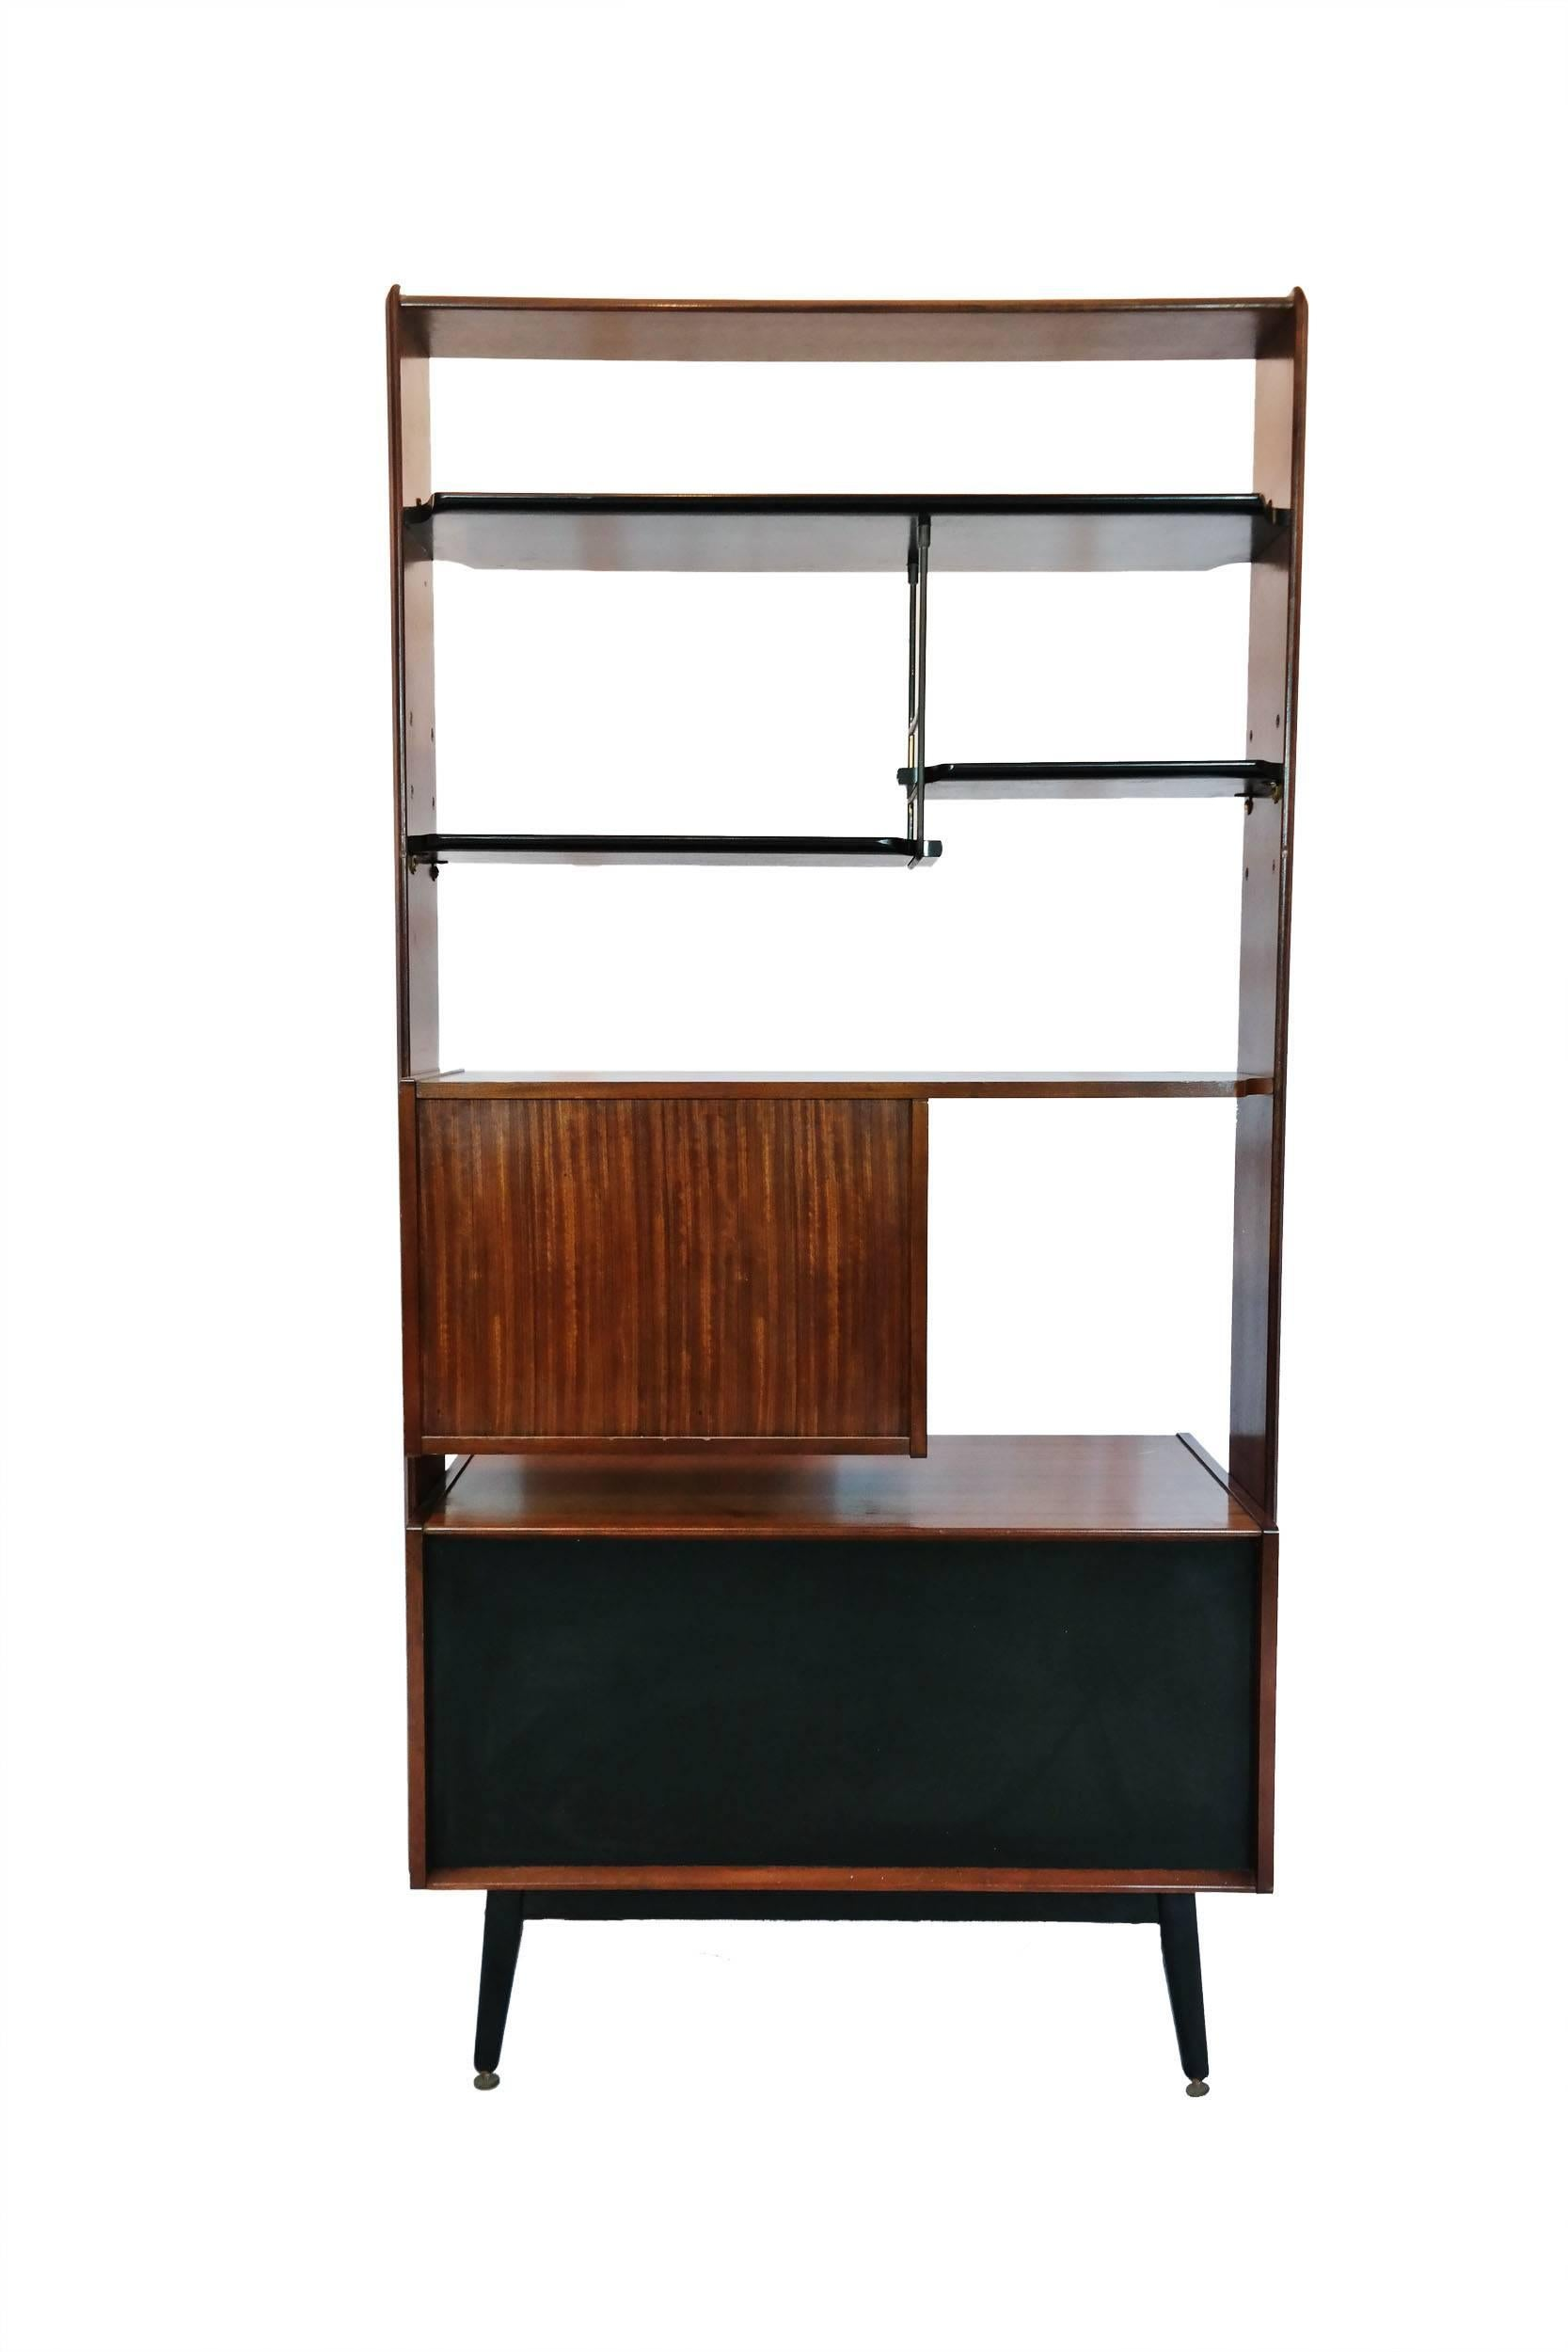 Mid Century Modern G Plan Room Divider Shelving Unit at 1stdibs